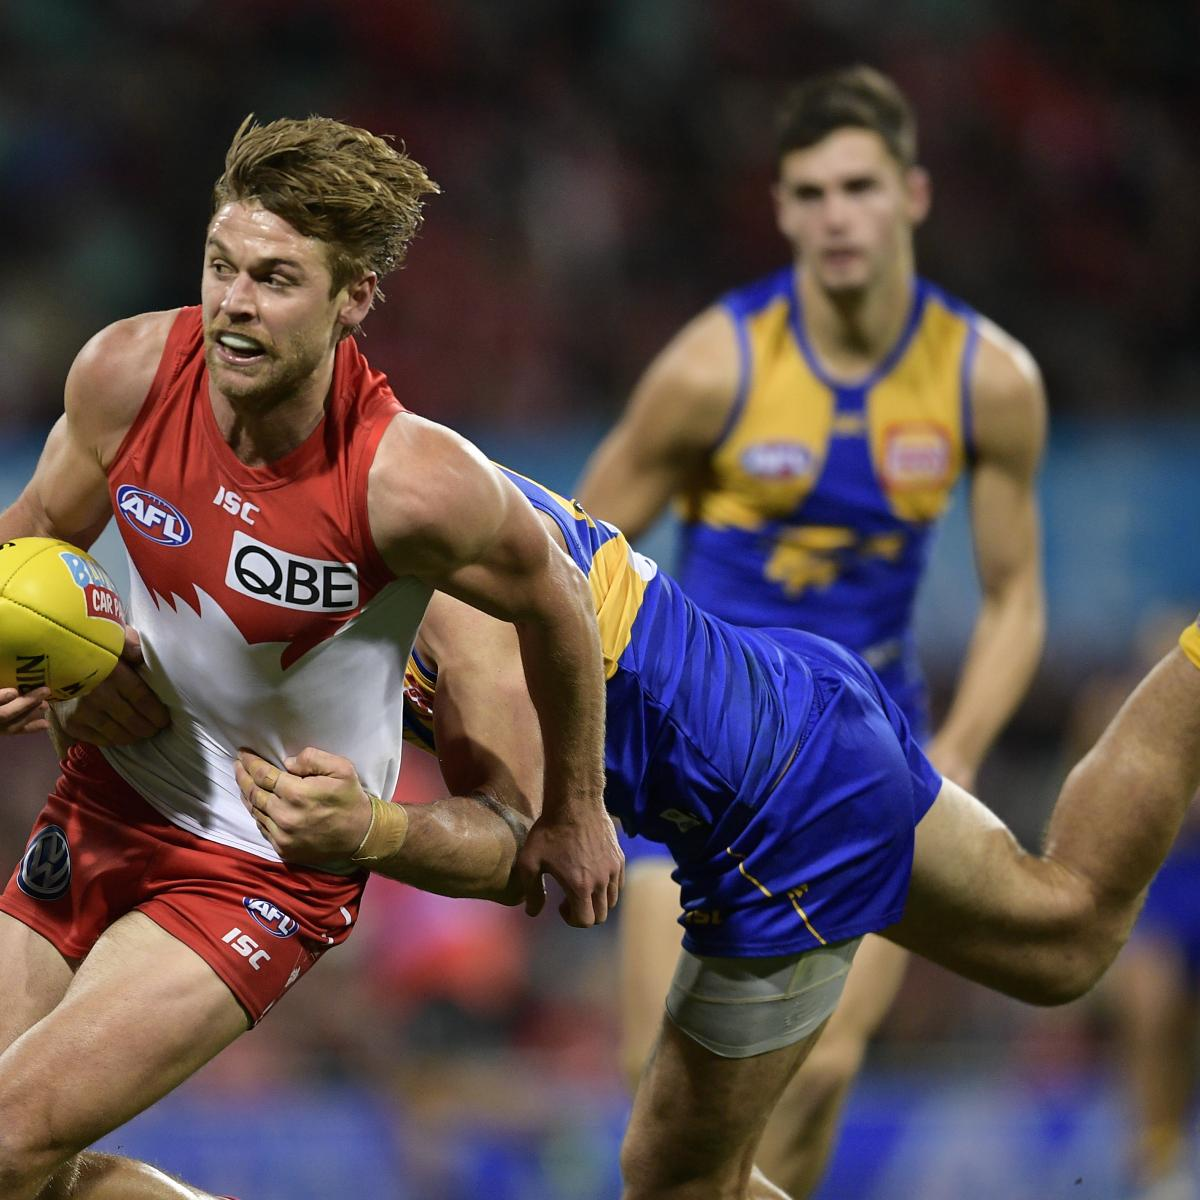 Afl betting odds round 10 nfr betting predictions for champions league